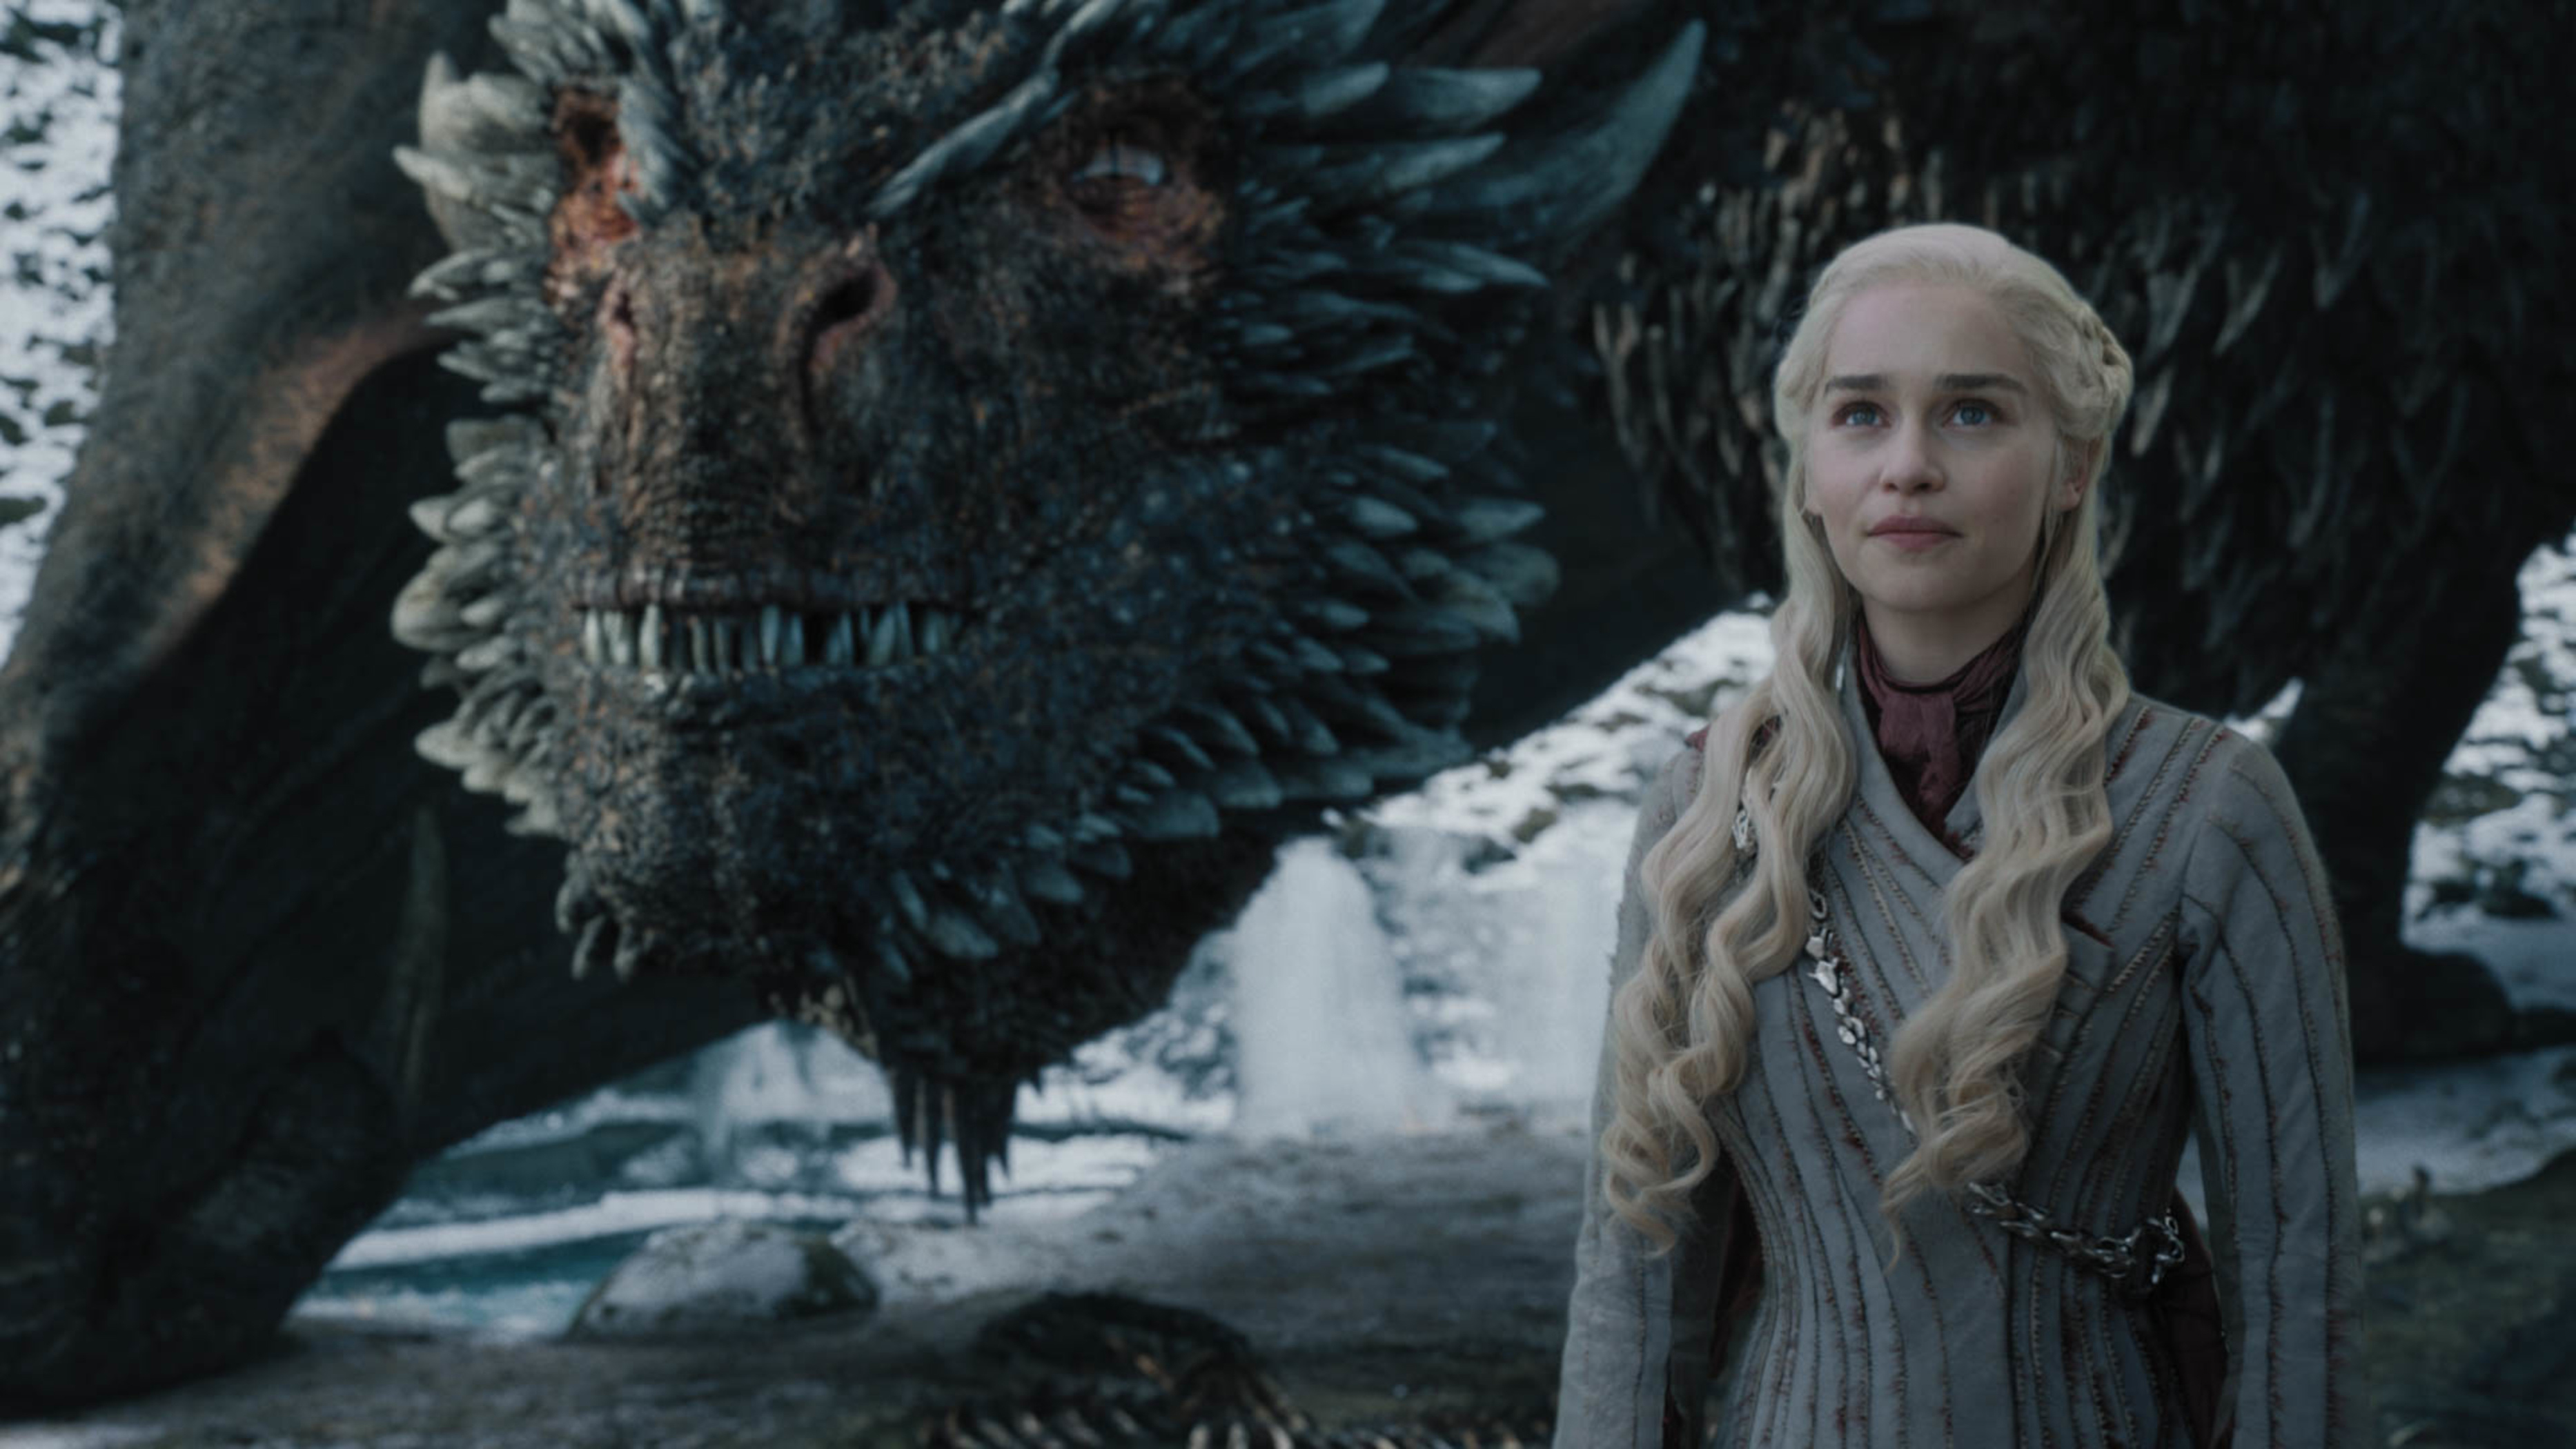 Game of Thrones' recap: 'The Last of the Starks' and the beginning